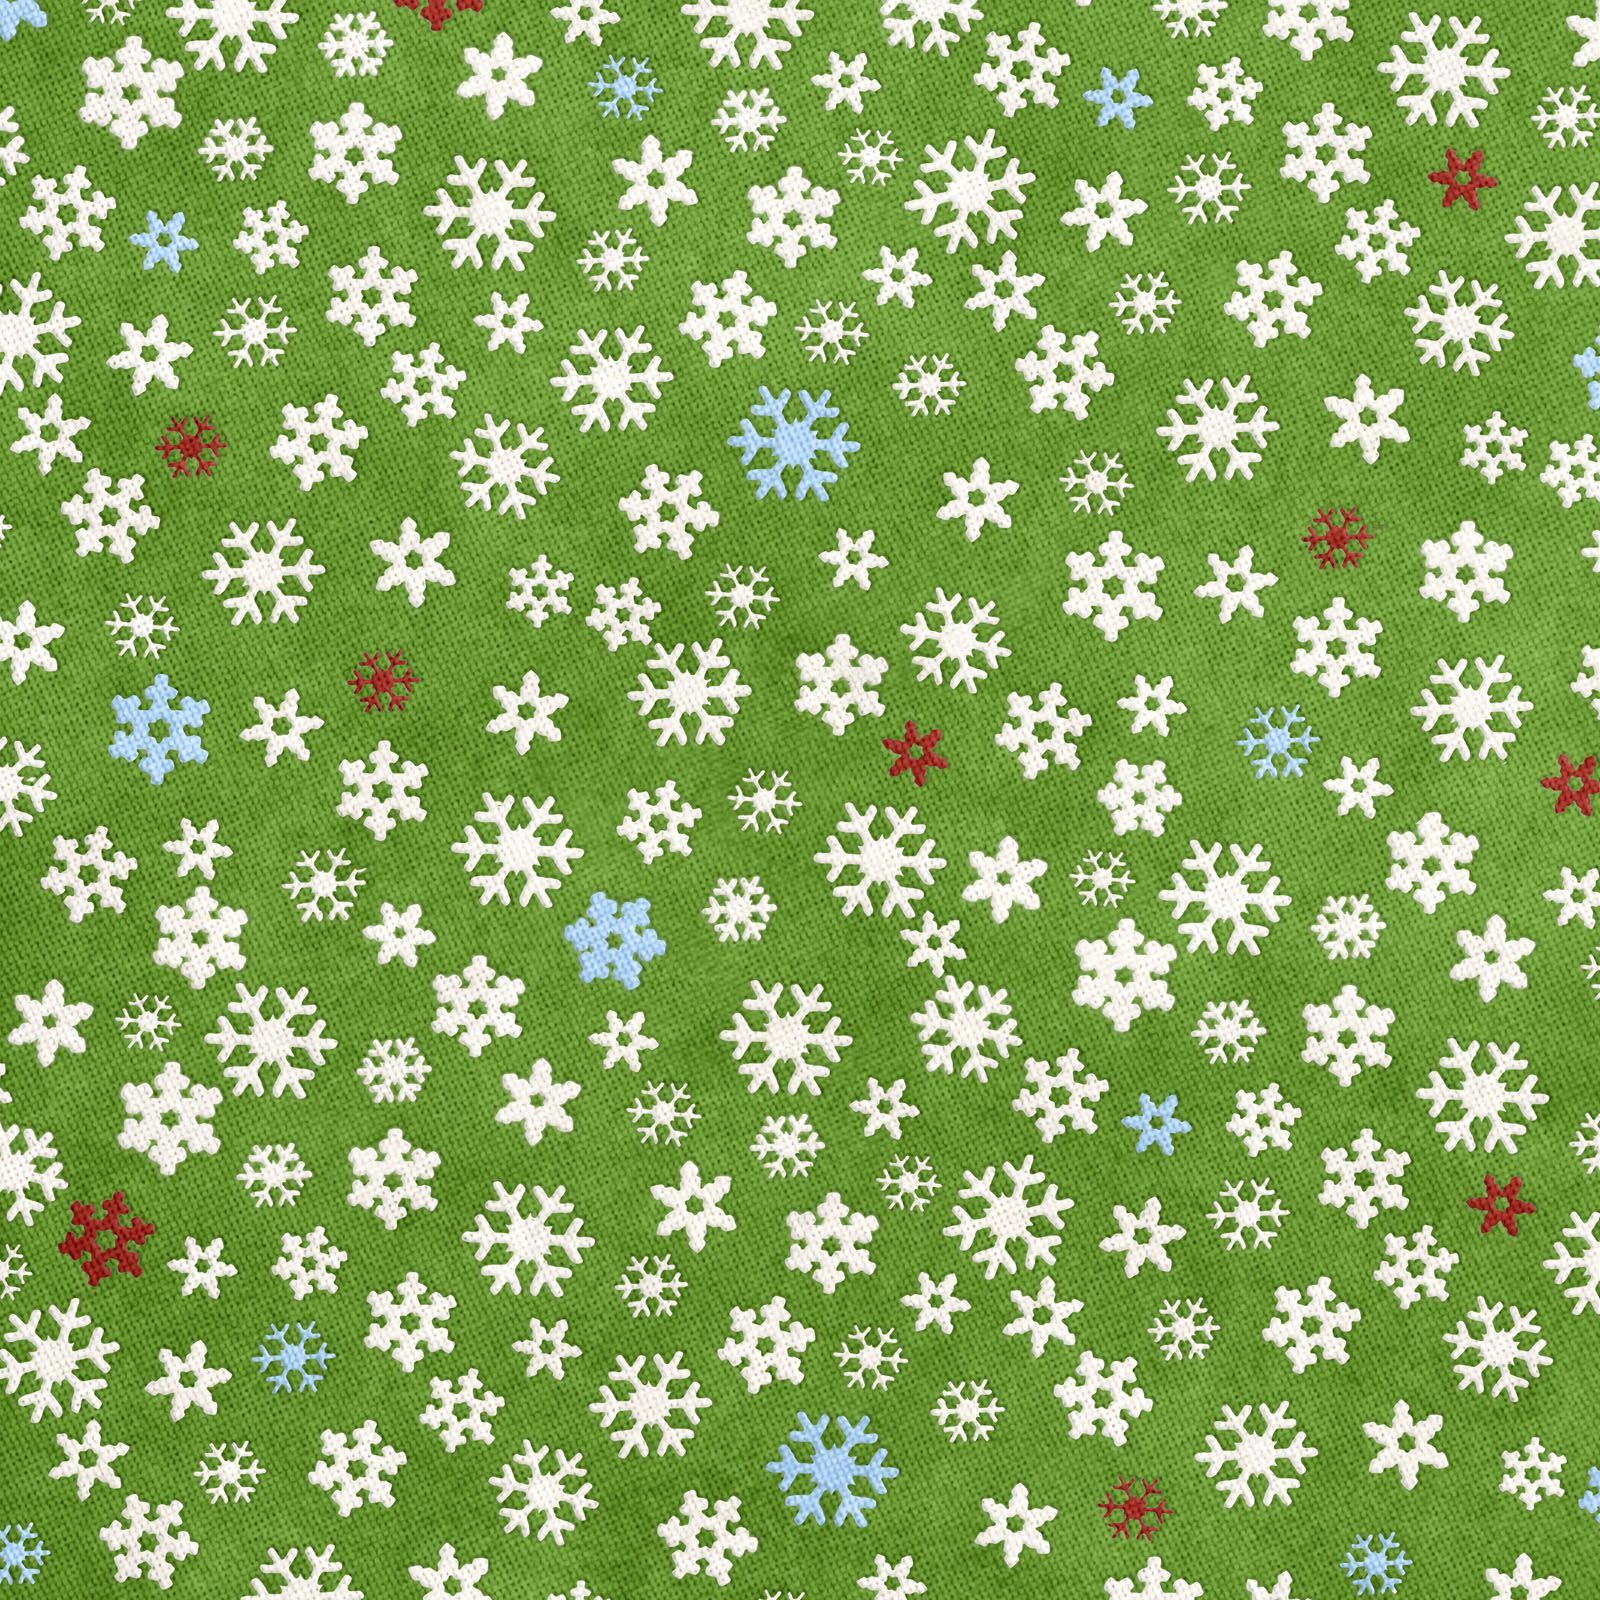 1600x1600 Free Printable Christmas Wrapping or Scrapbook Paper : IMG HEAVY ...